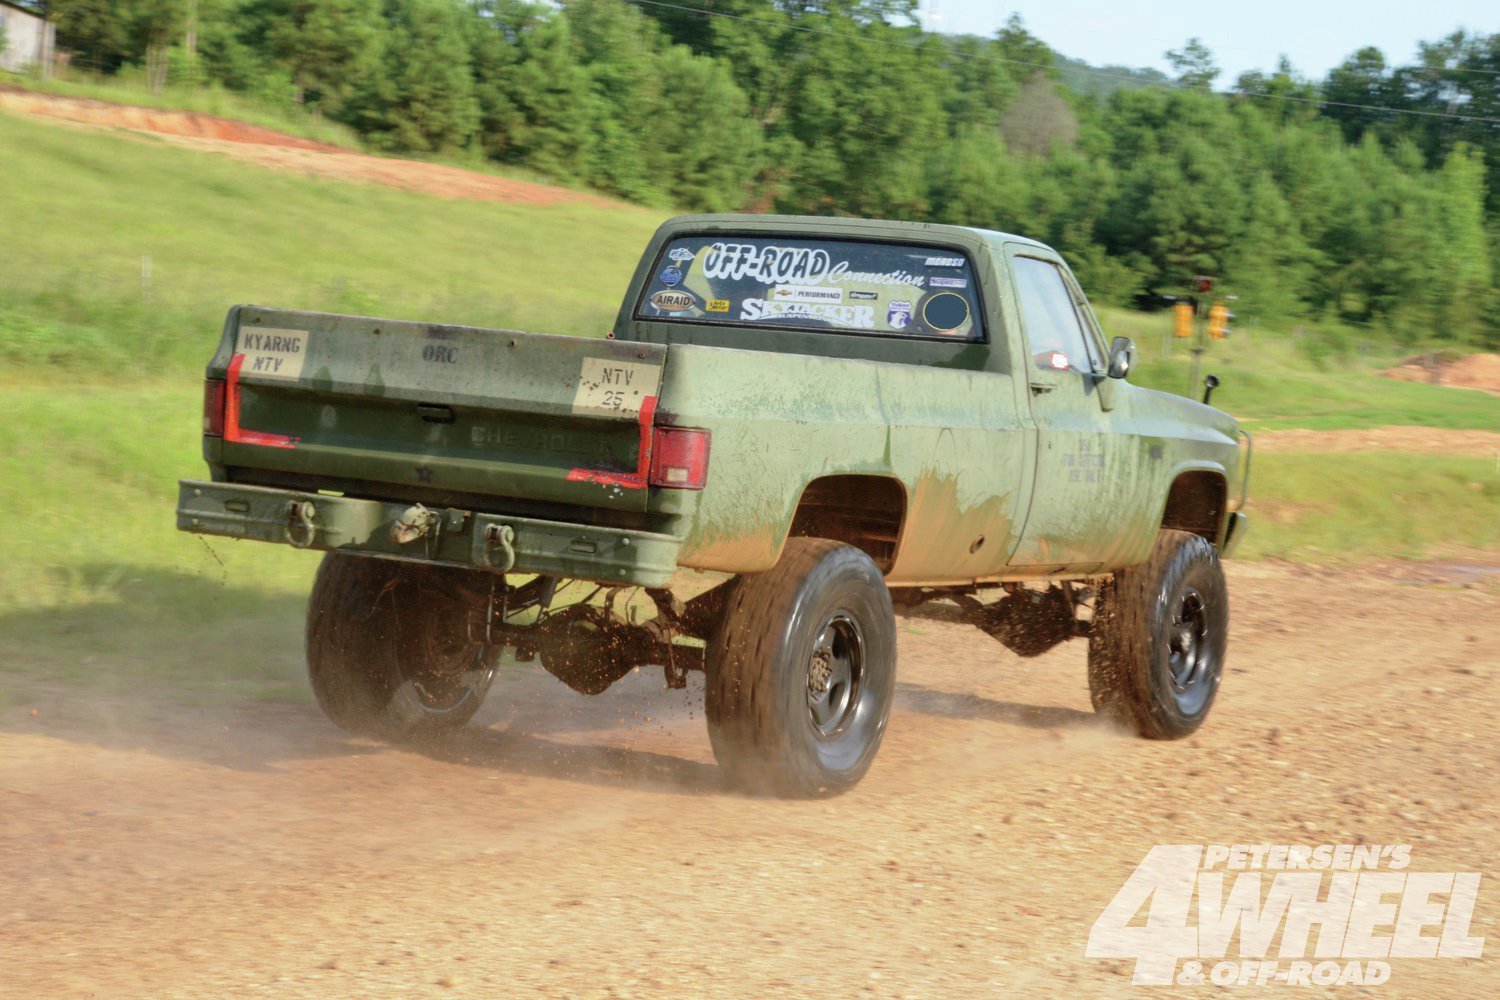 1986 Chevrolet K30 Army Truck - Part 1: Atlas & 4L85E Swap